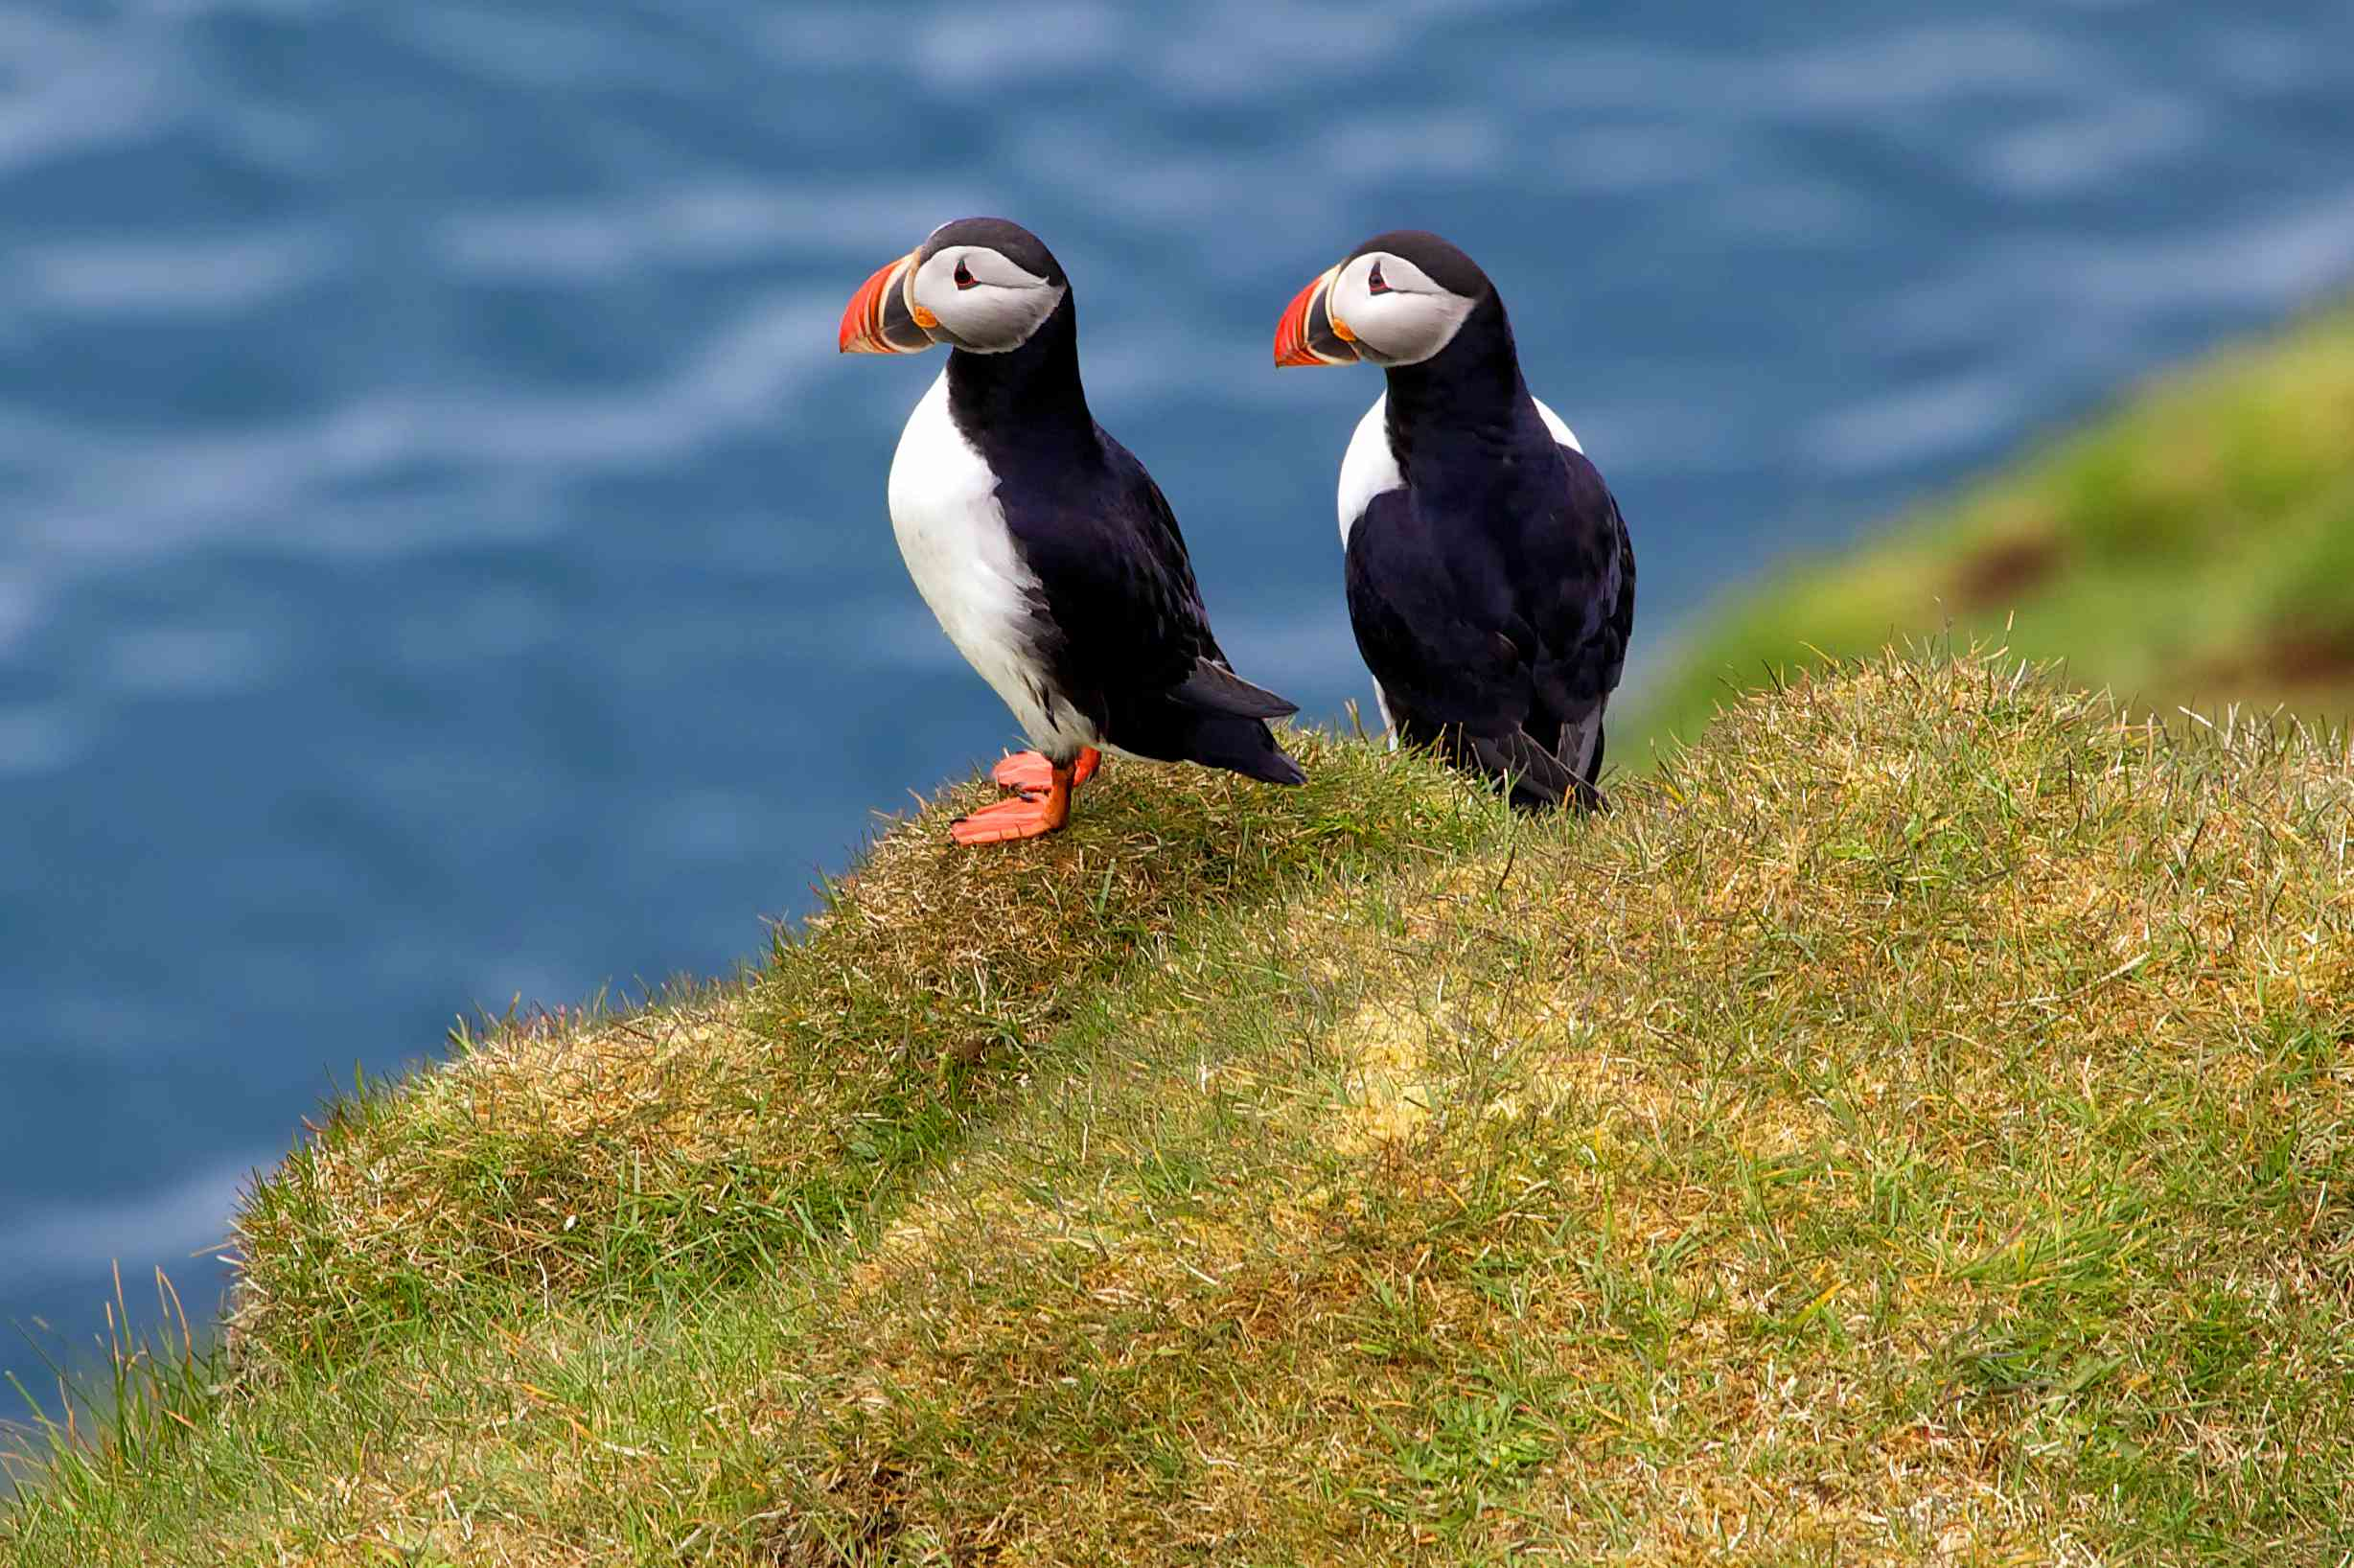 two puffins with white chests, black feathers, and orange beaks and webbed-feet standing on a green hill overlooking the ocean